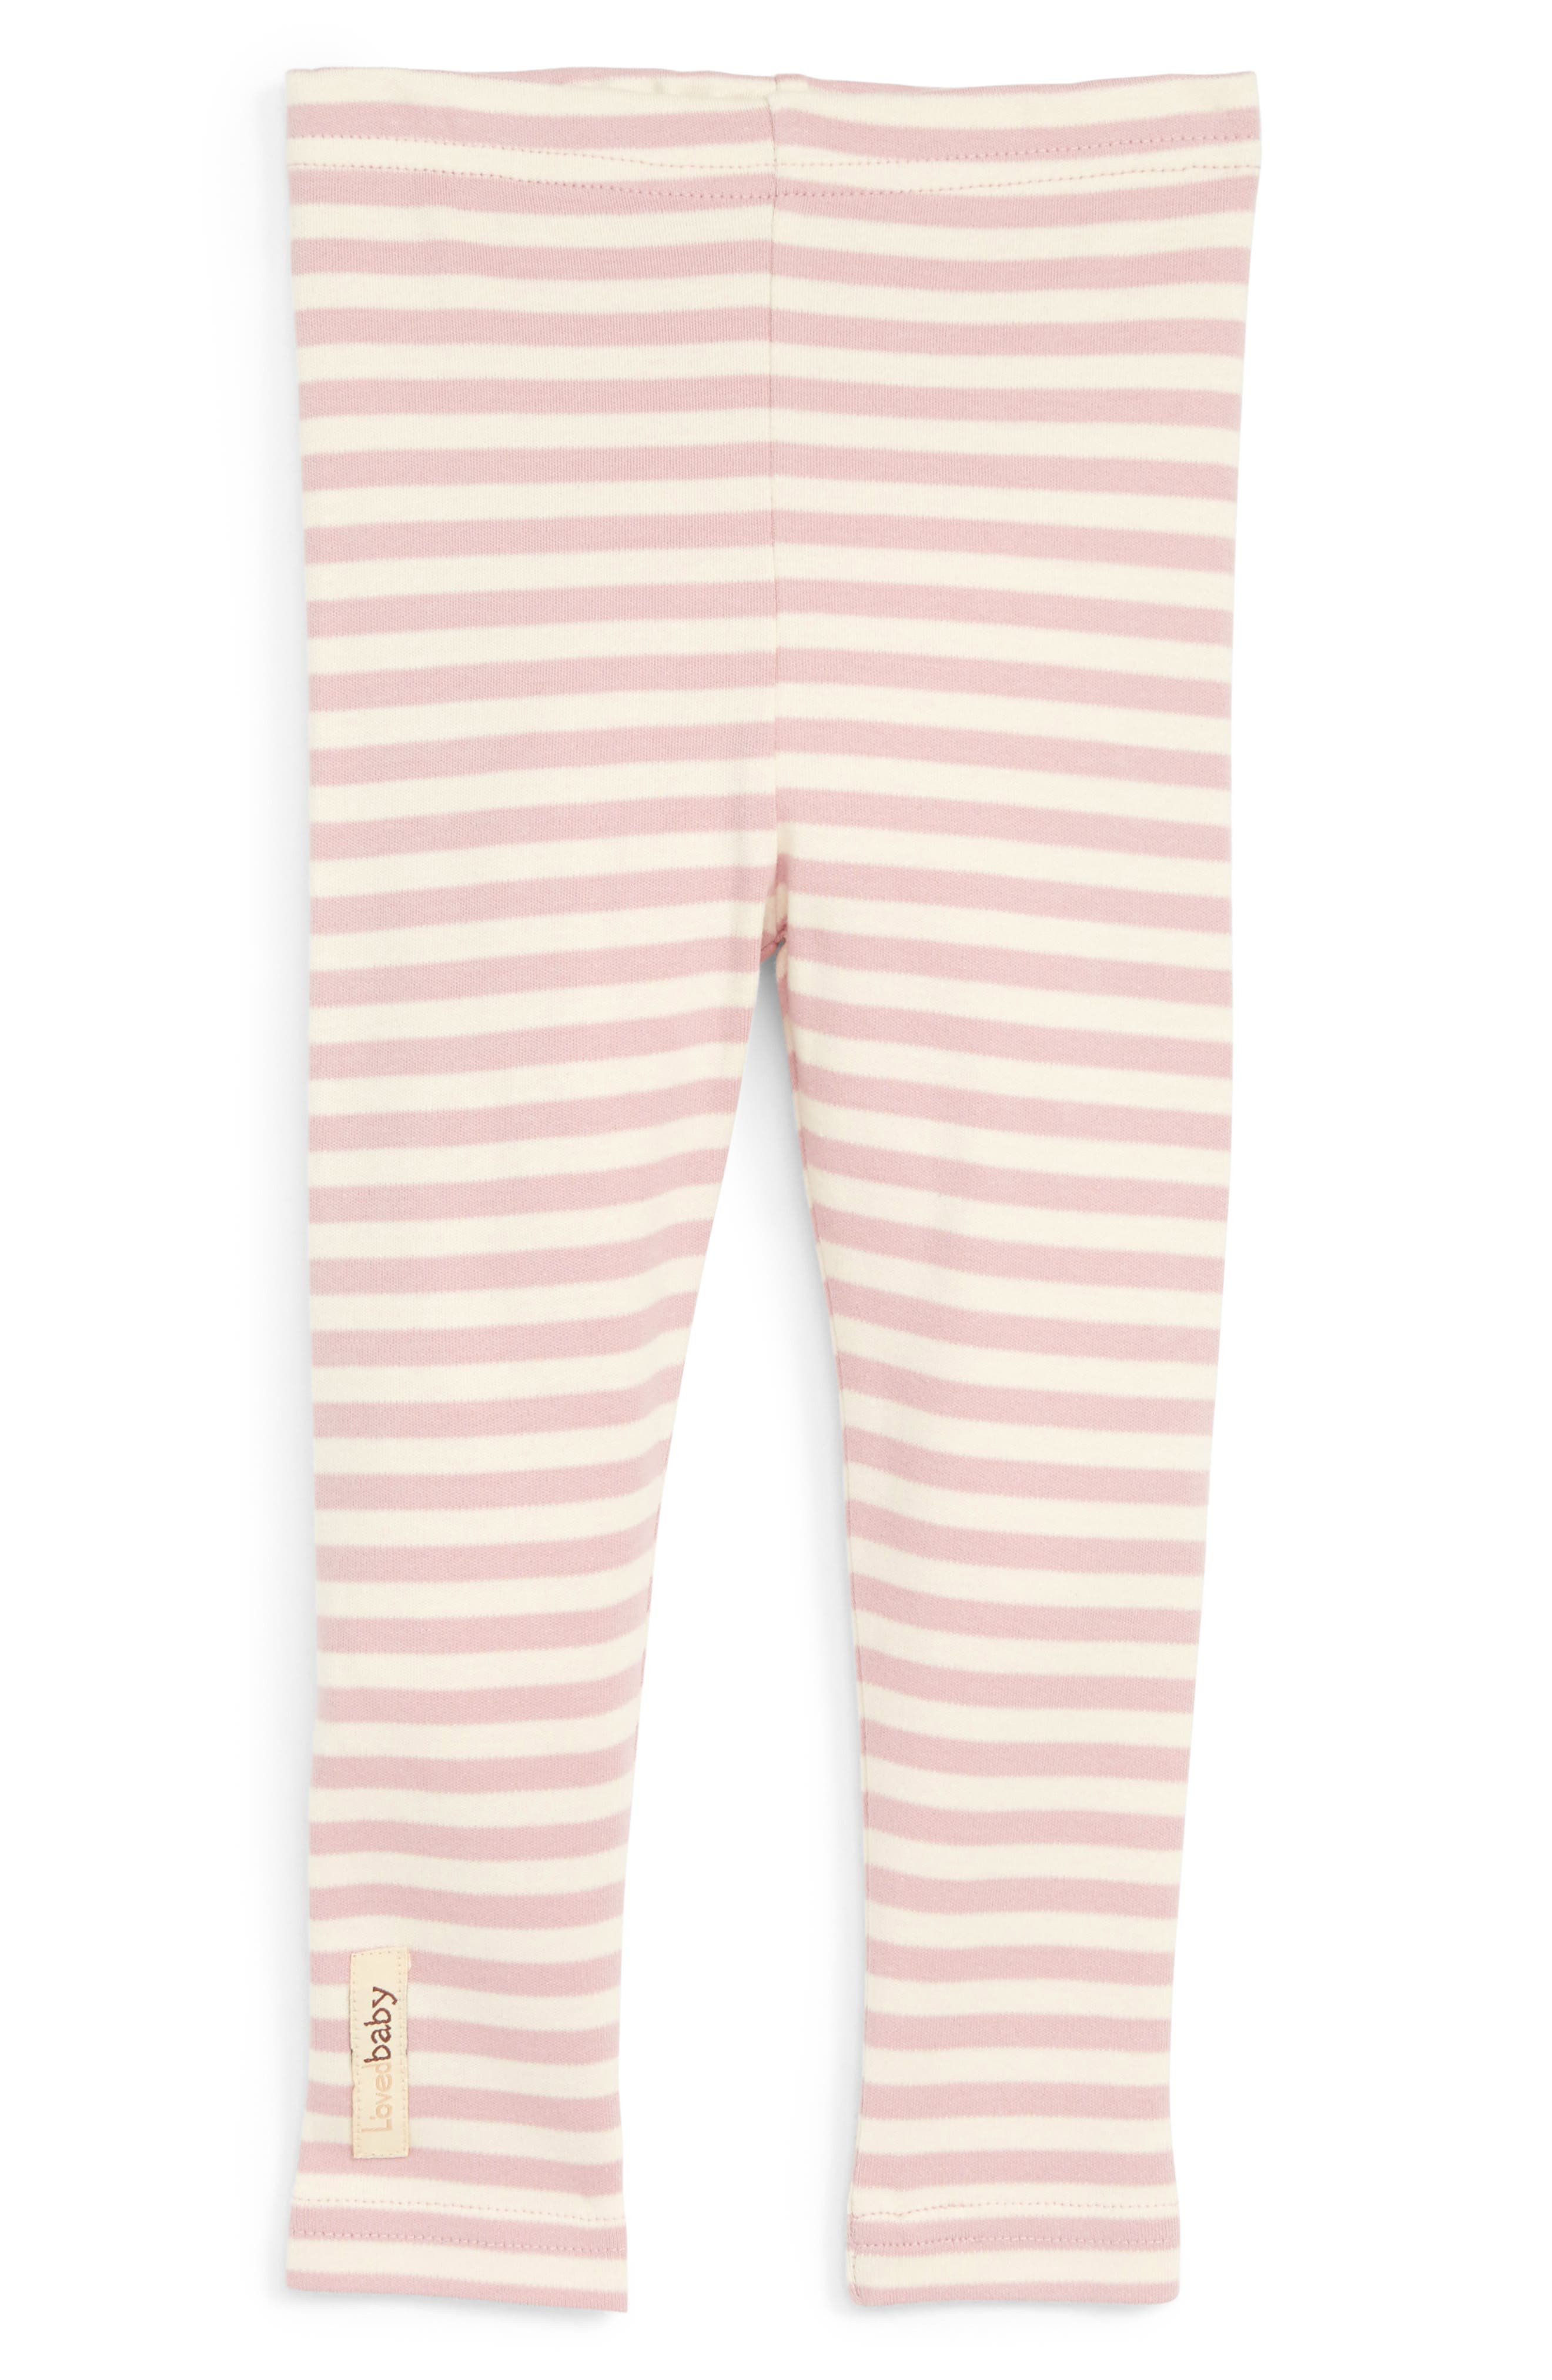 Alternate Image 1 Selected - L'ovedbaby Organic Cotton Leggings (Baby)